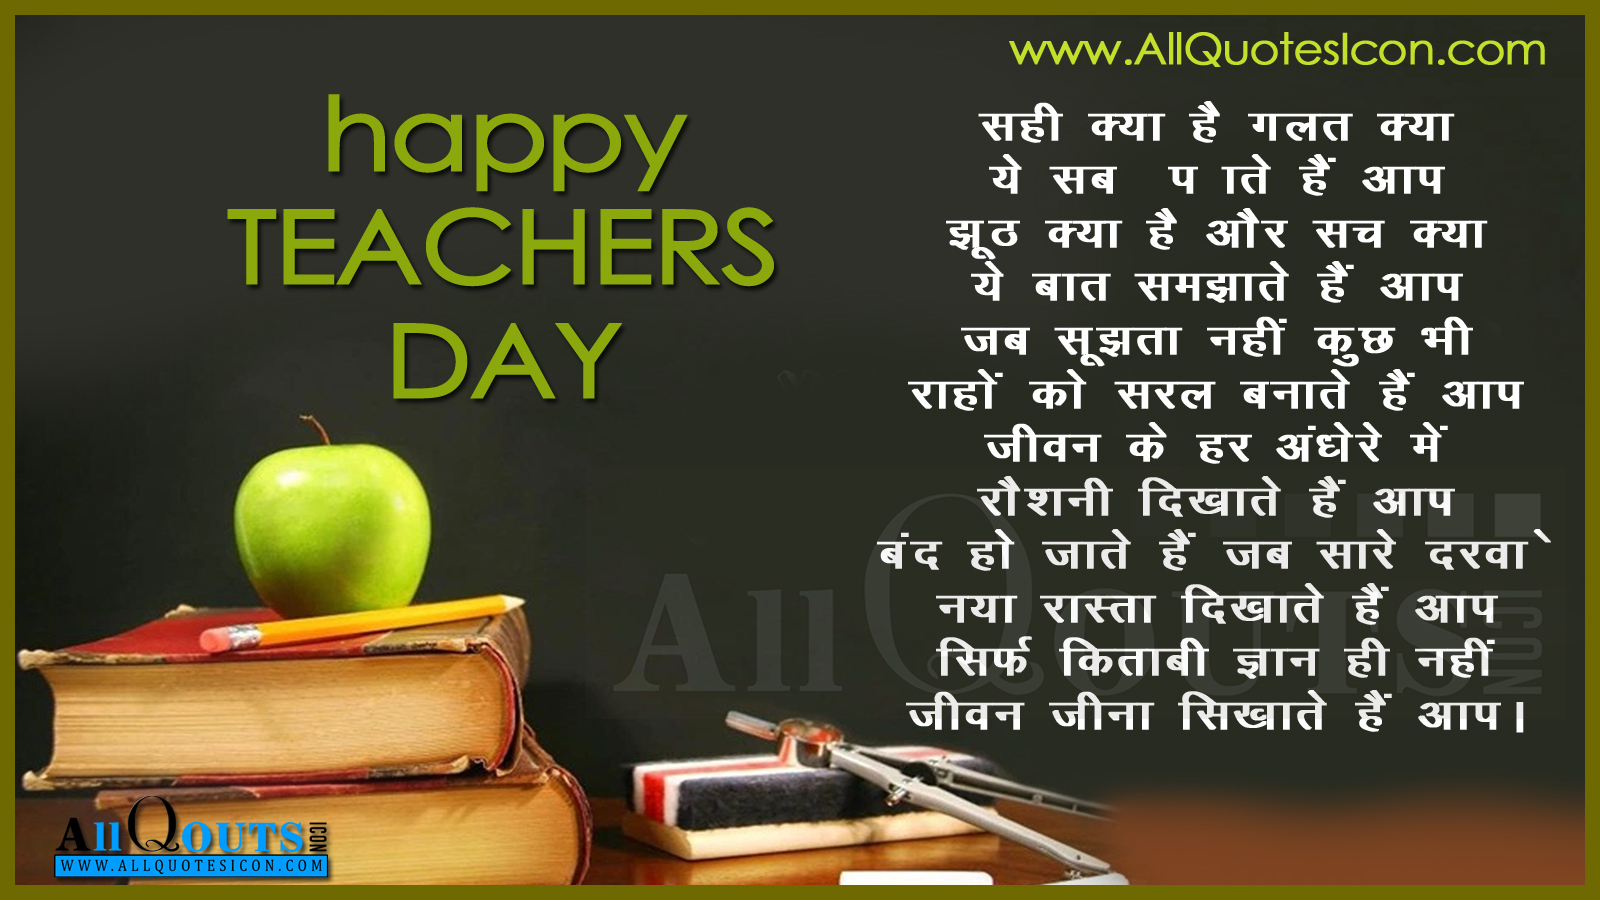 Motivational Quotes On Teachers Day In Hindi With Best Quotes For Teachers Day In Hindi 352431 Hd Wallpaper Backgrounds Download